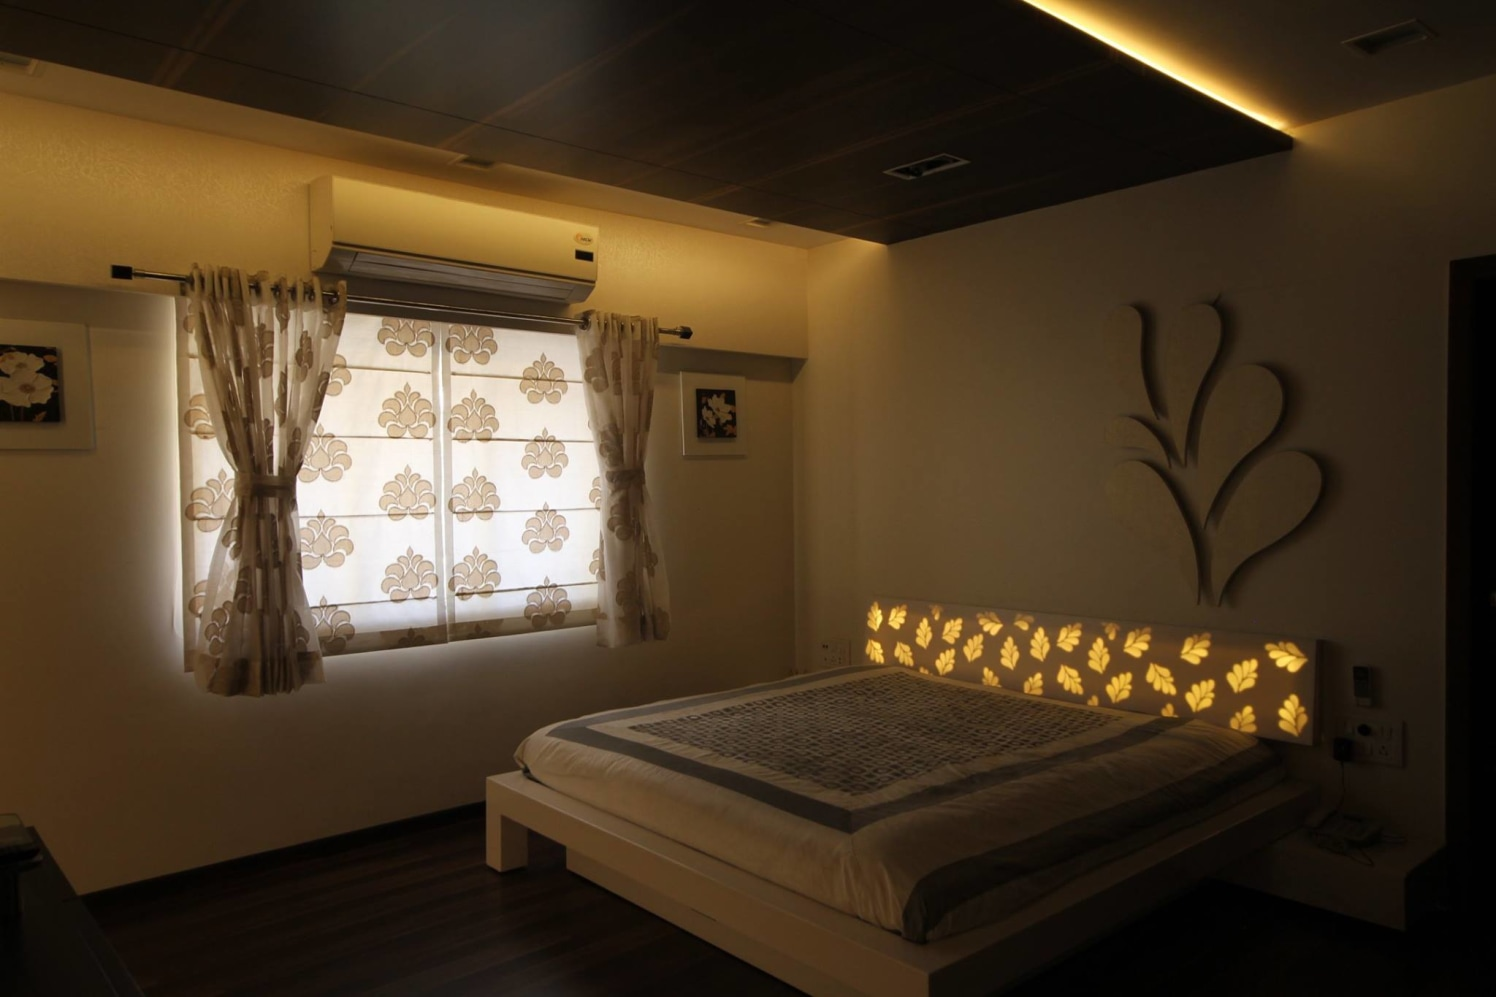 Starry lights master bedroom theme decor by Ankur Tulsyan  Bedroom Contemporary | Interior Design Photos & Ideas